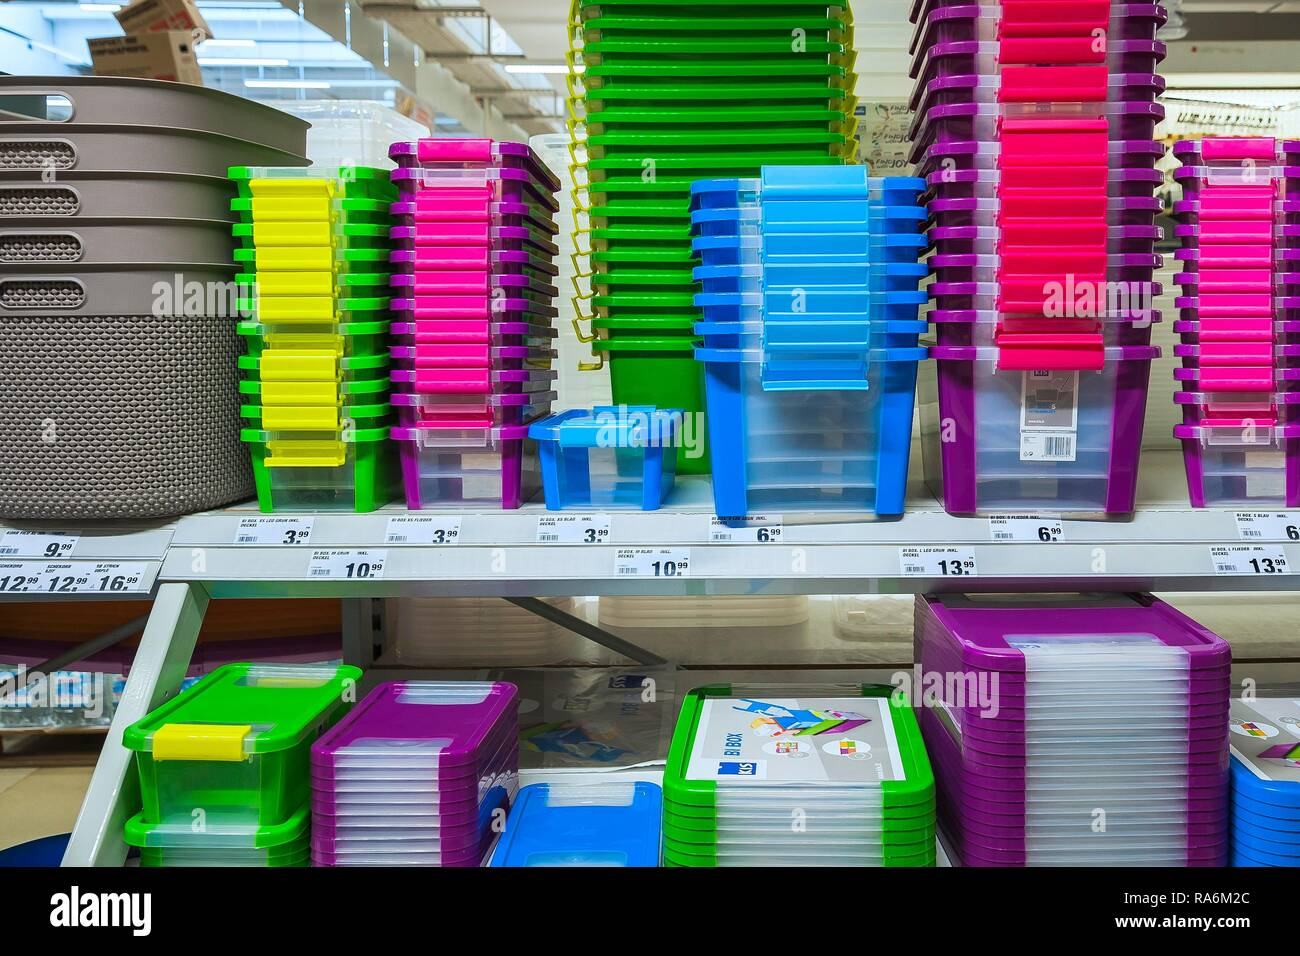 Plastic container, hardware store, Germany - Stock Image